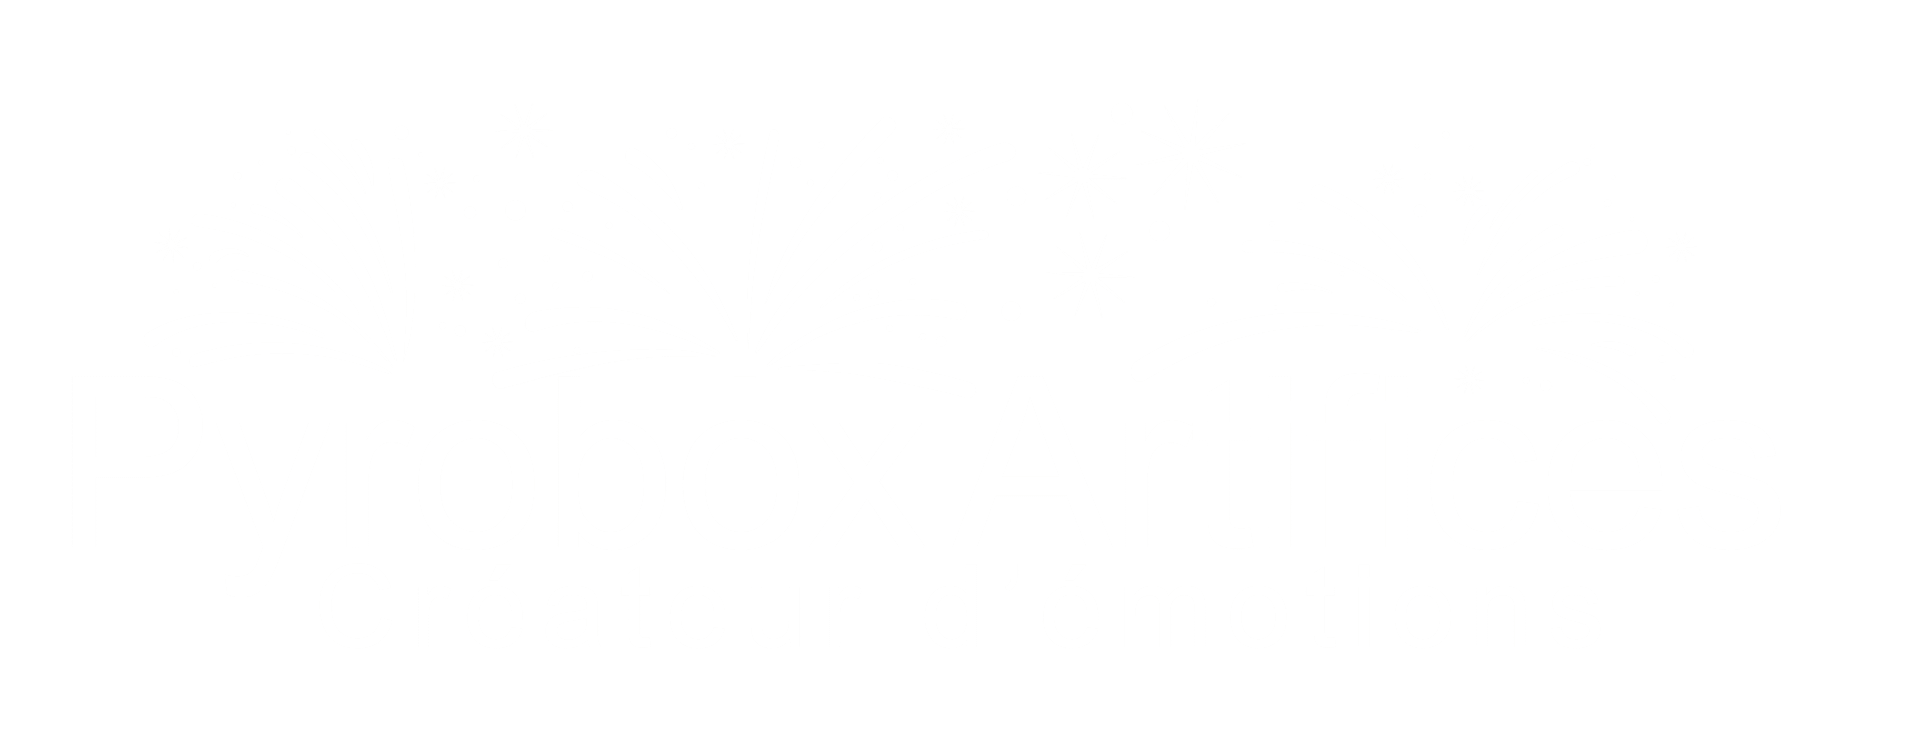 logo-pyrobox-artifices-blanc